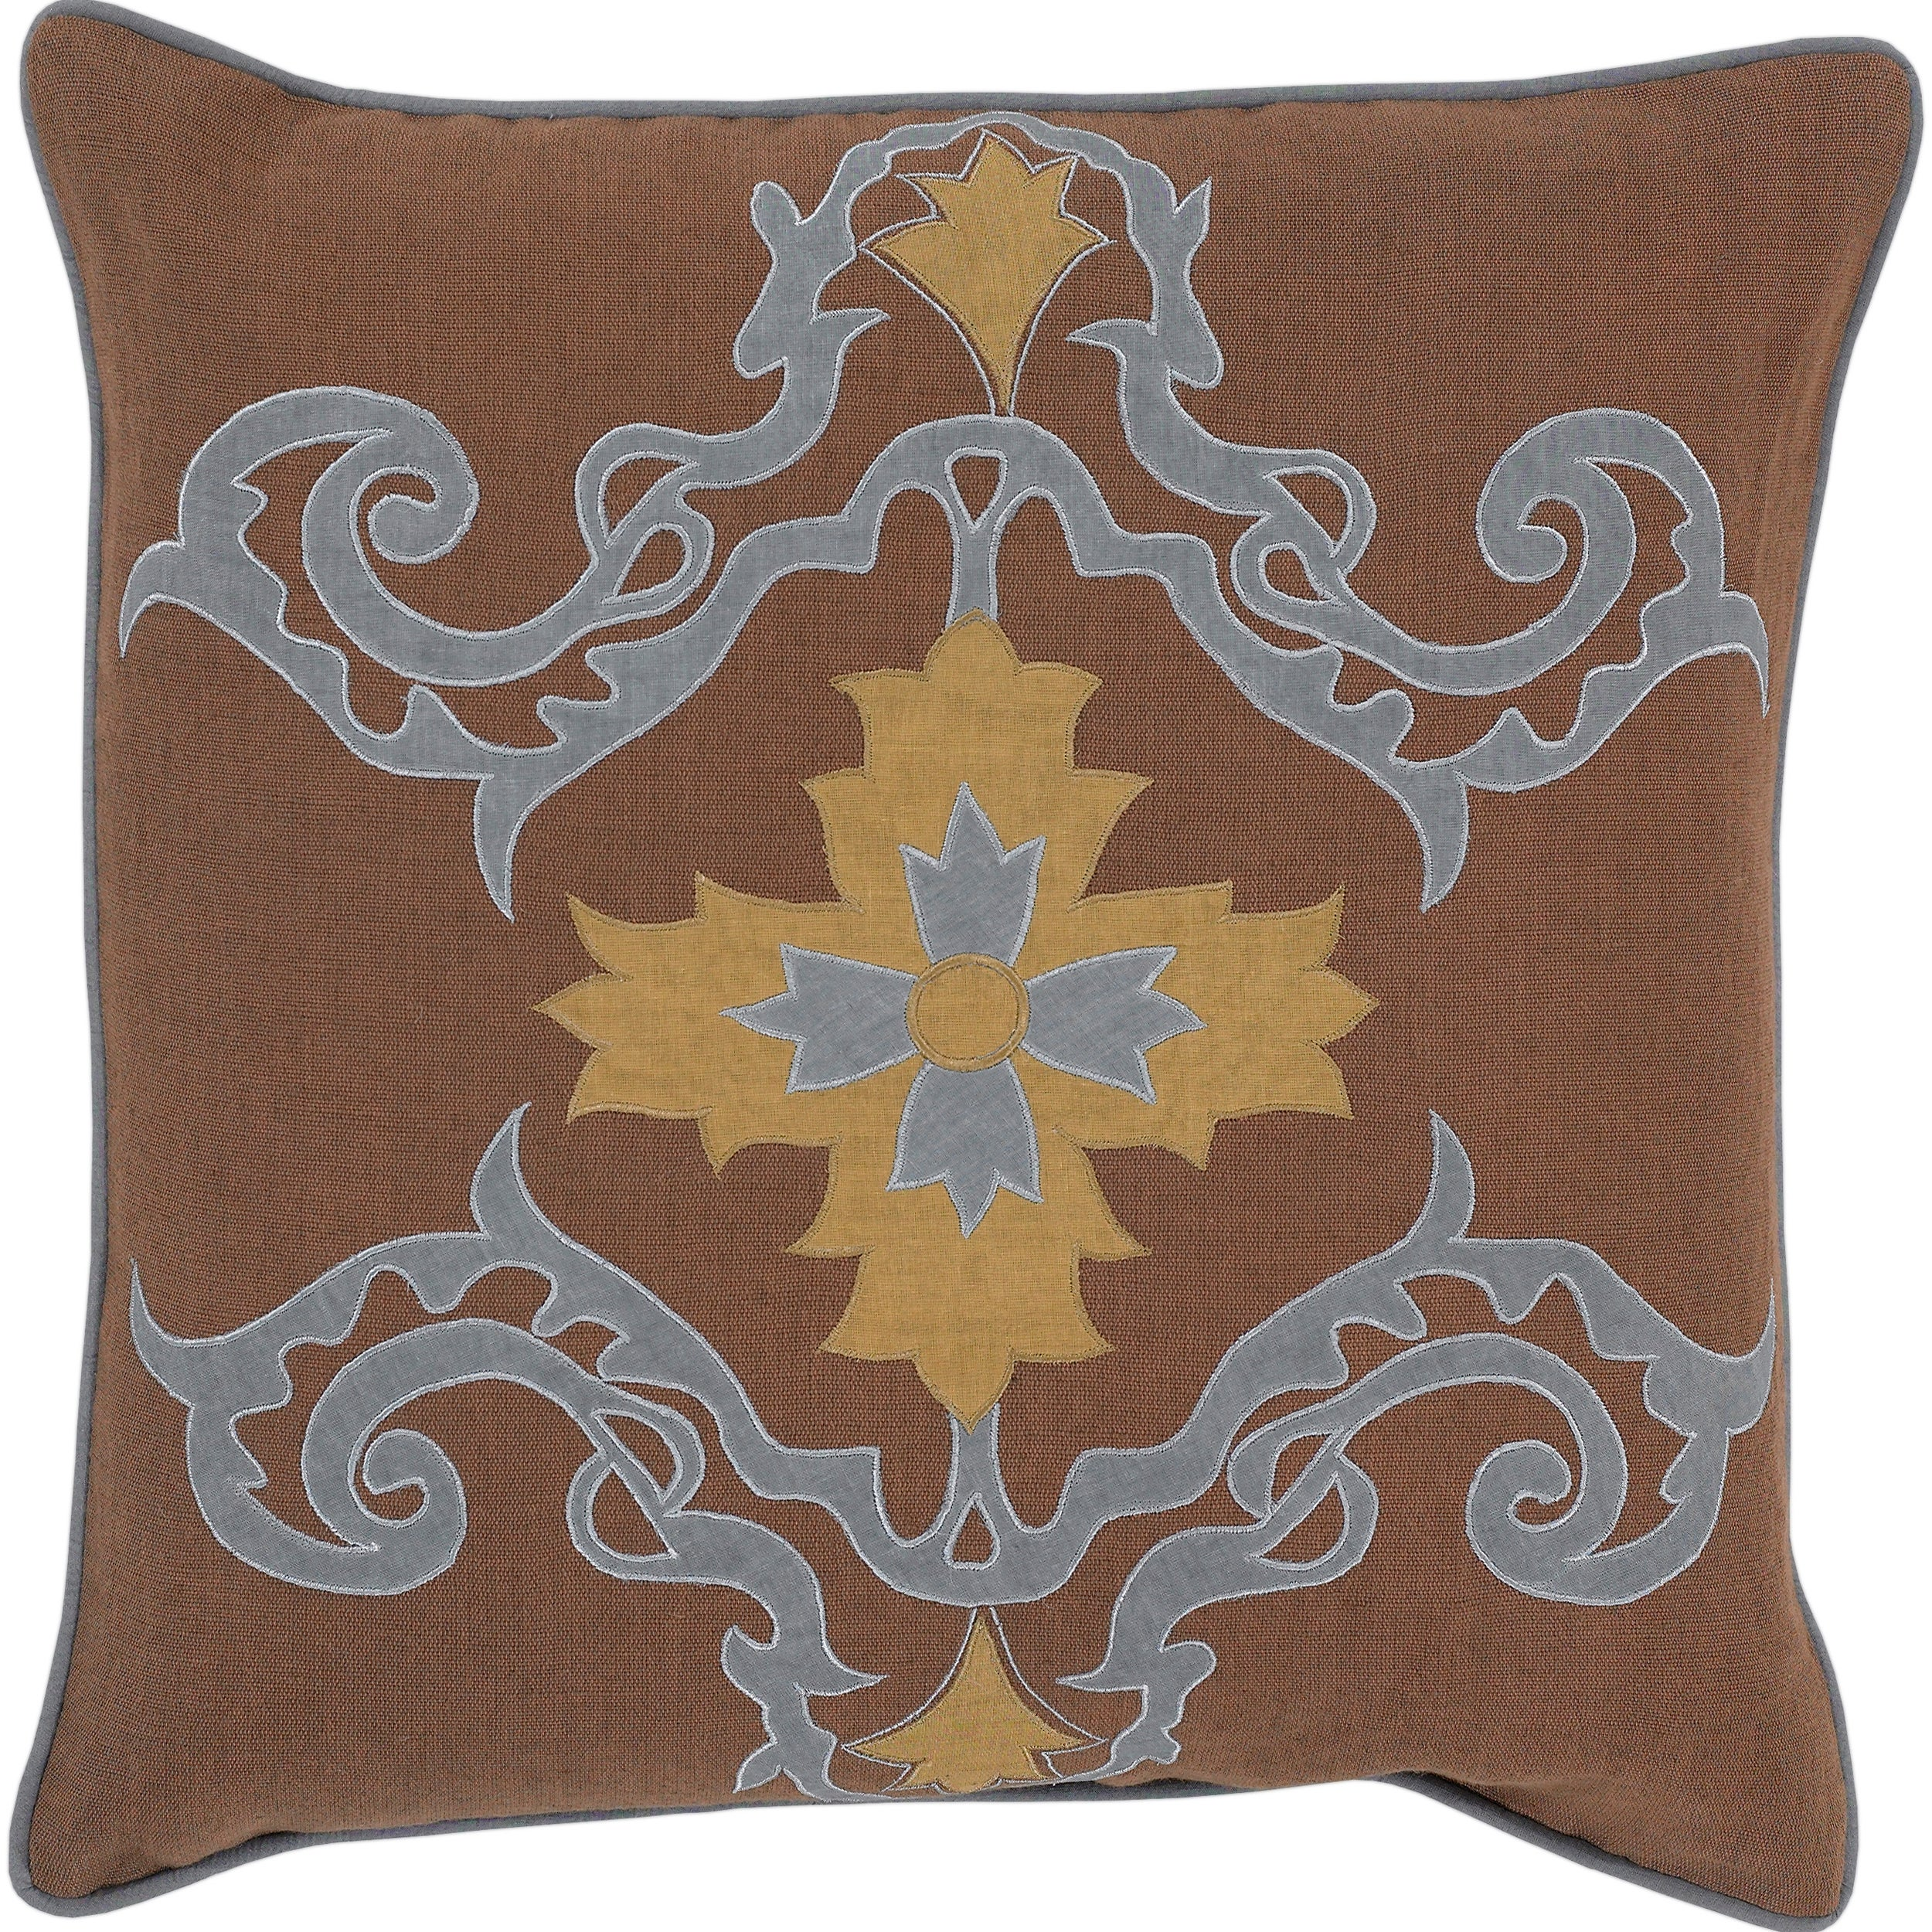 Namur Brown Geometric Decorative Pillow